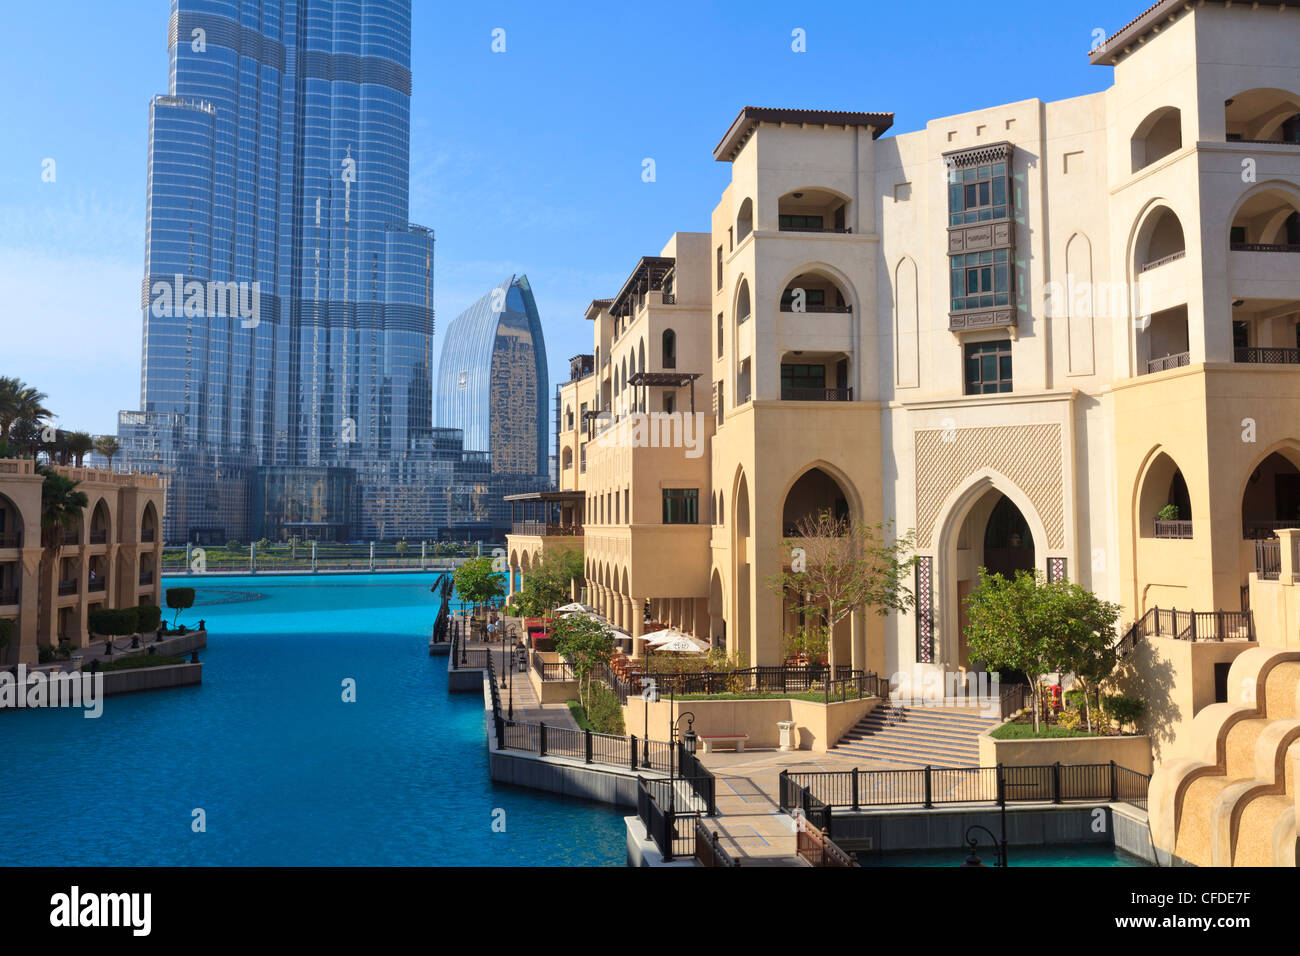 The palace hotel and burj khalifa downtown dubai united for Emirates hotel dubai